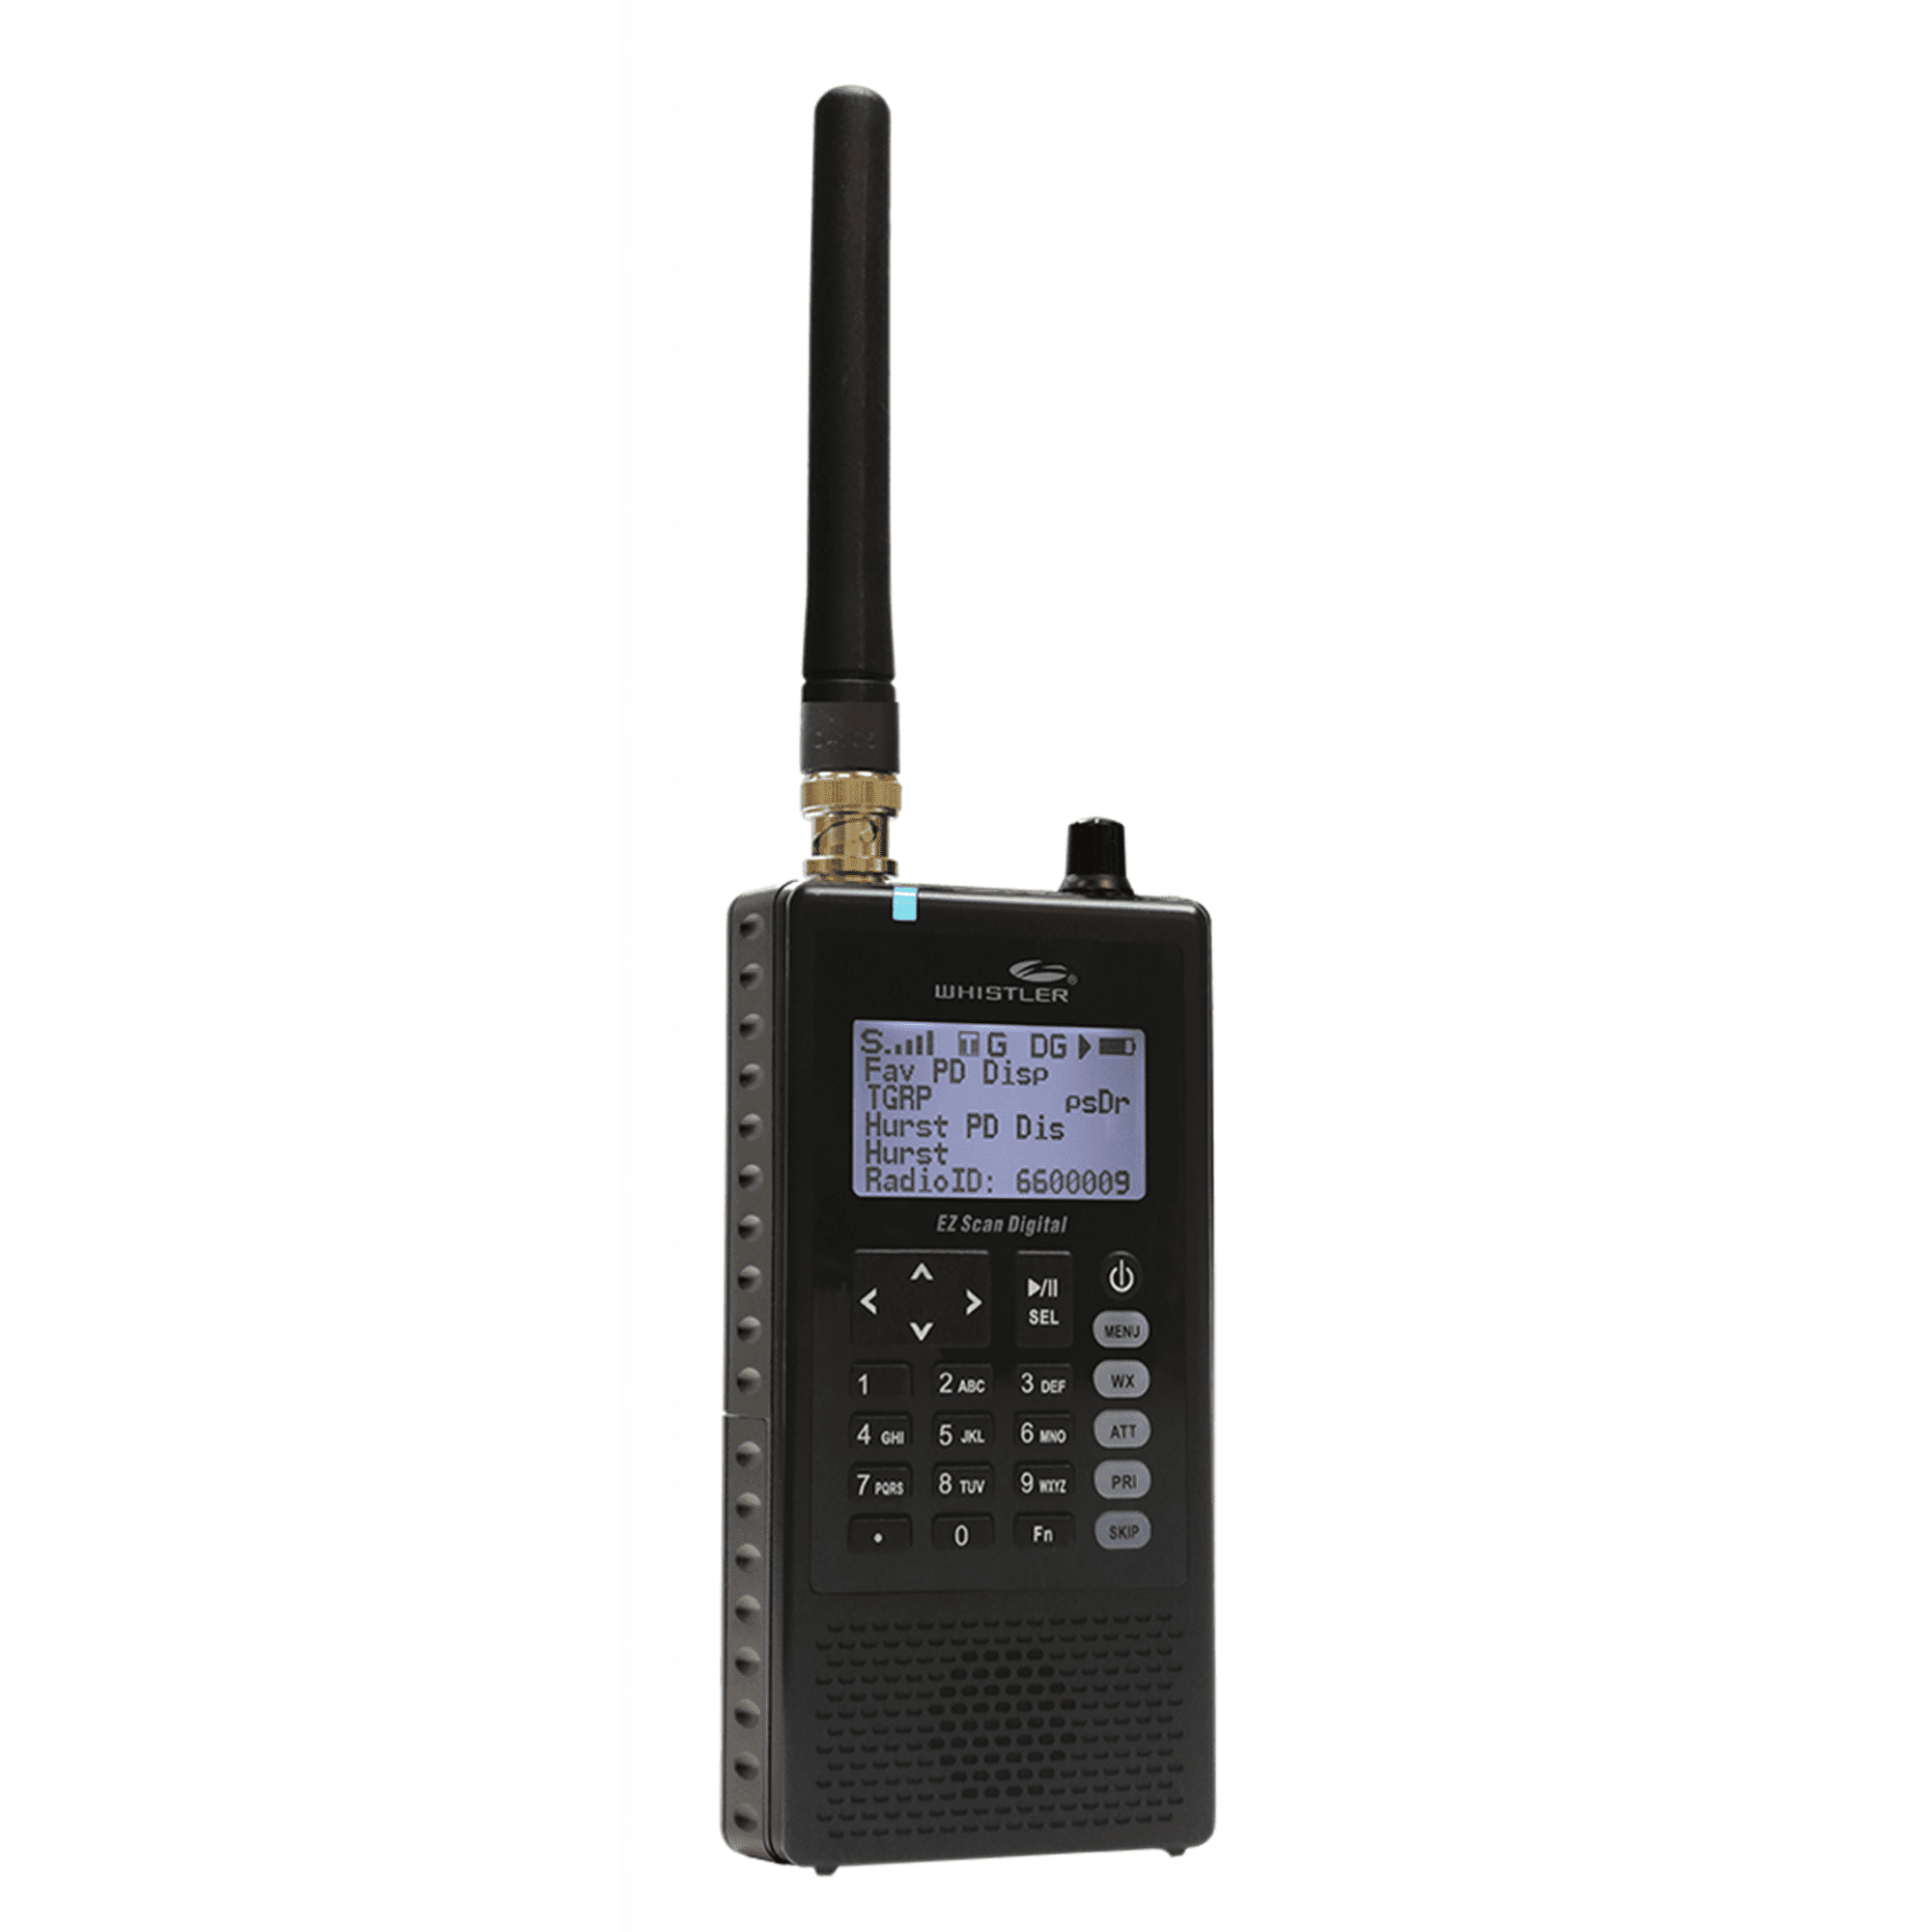 Whistler WS1088 Digital Trunking Handheld Scanner Radio by Whistler